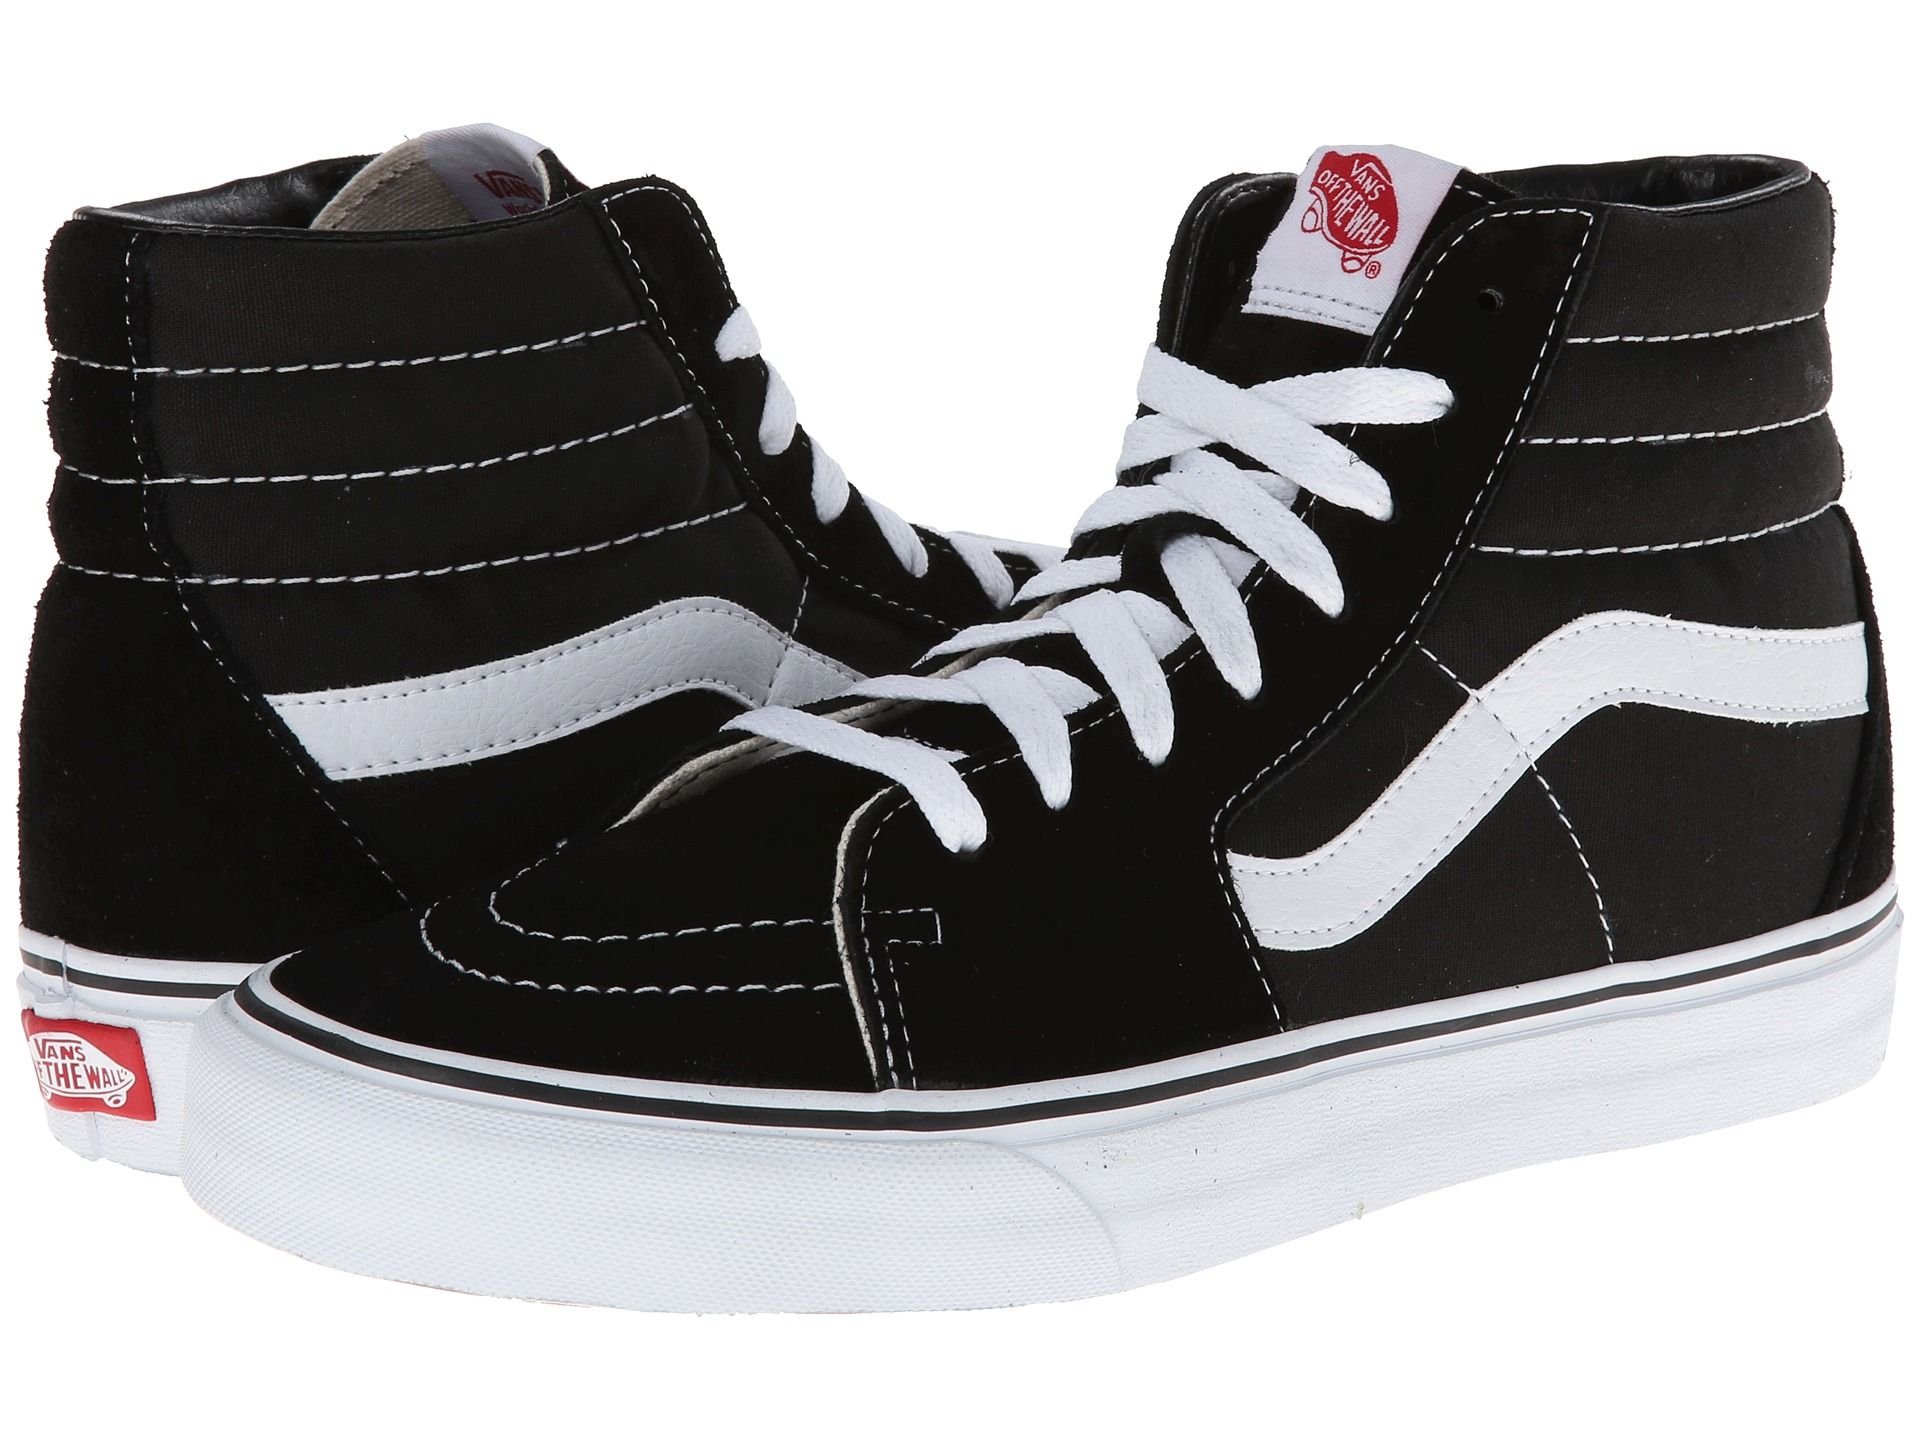 1dfec77f3768 Vans Men s Pro Black White Skate Shoe This shoe is so rad that it was brought  back to life from the past so that you can wear it yourself.